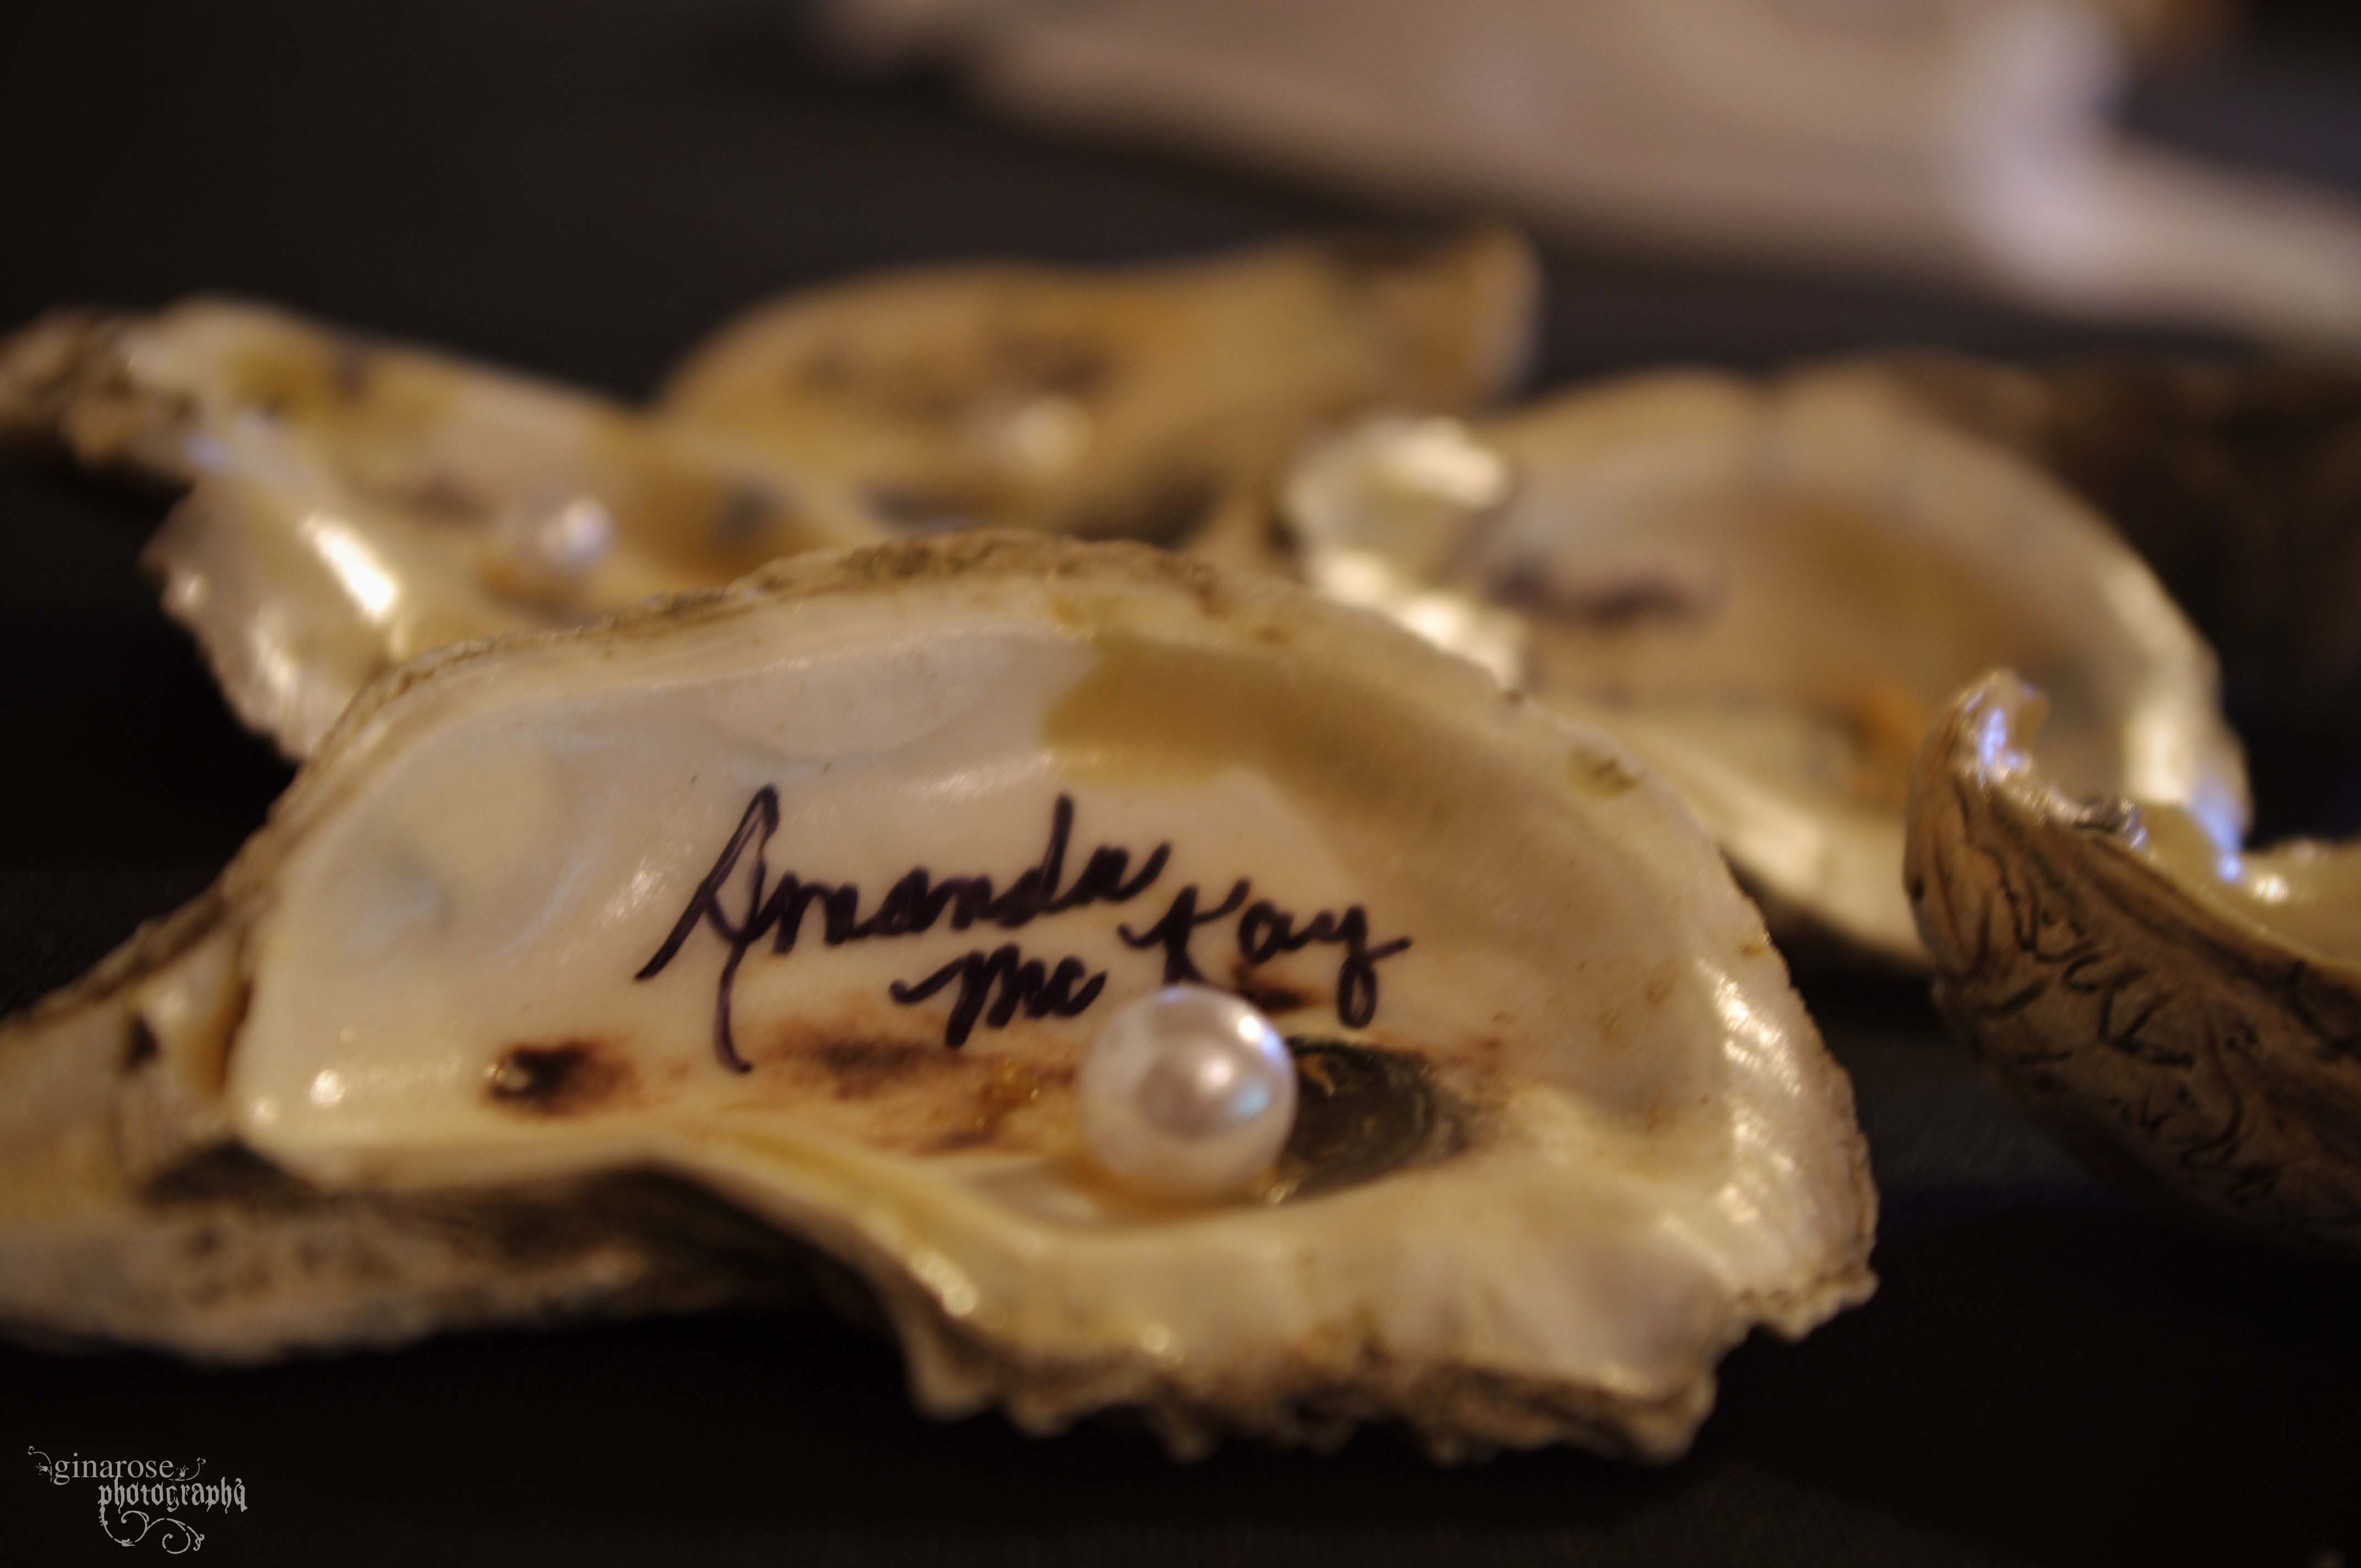 Names On Oyster Shells For Assigned Seating At A Wedding Reception